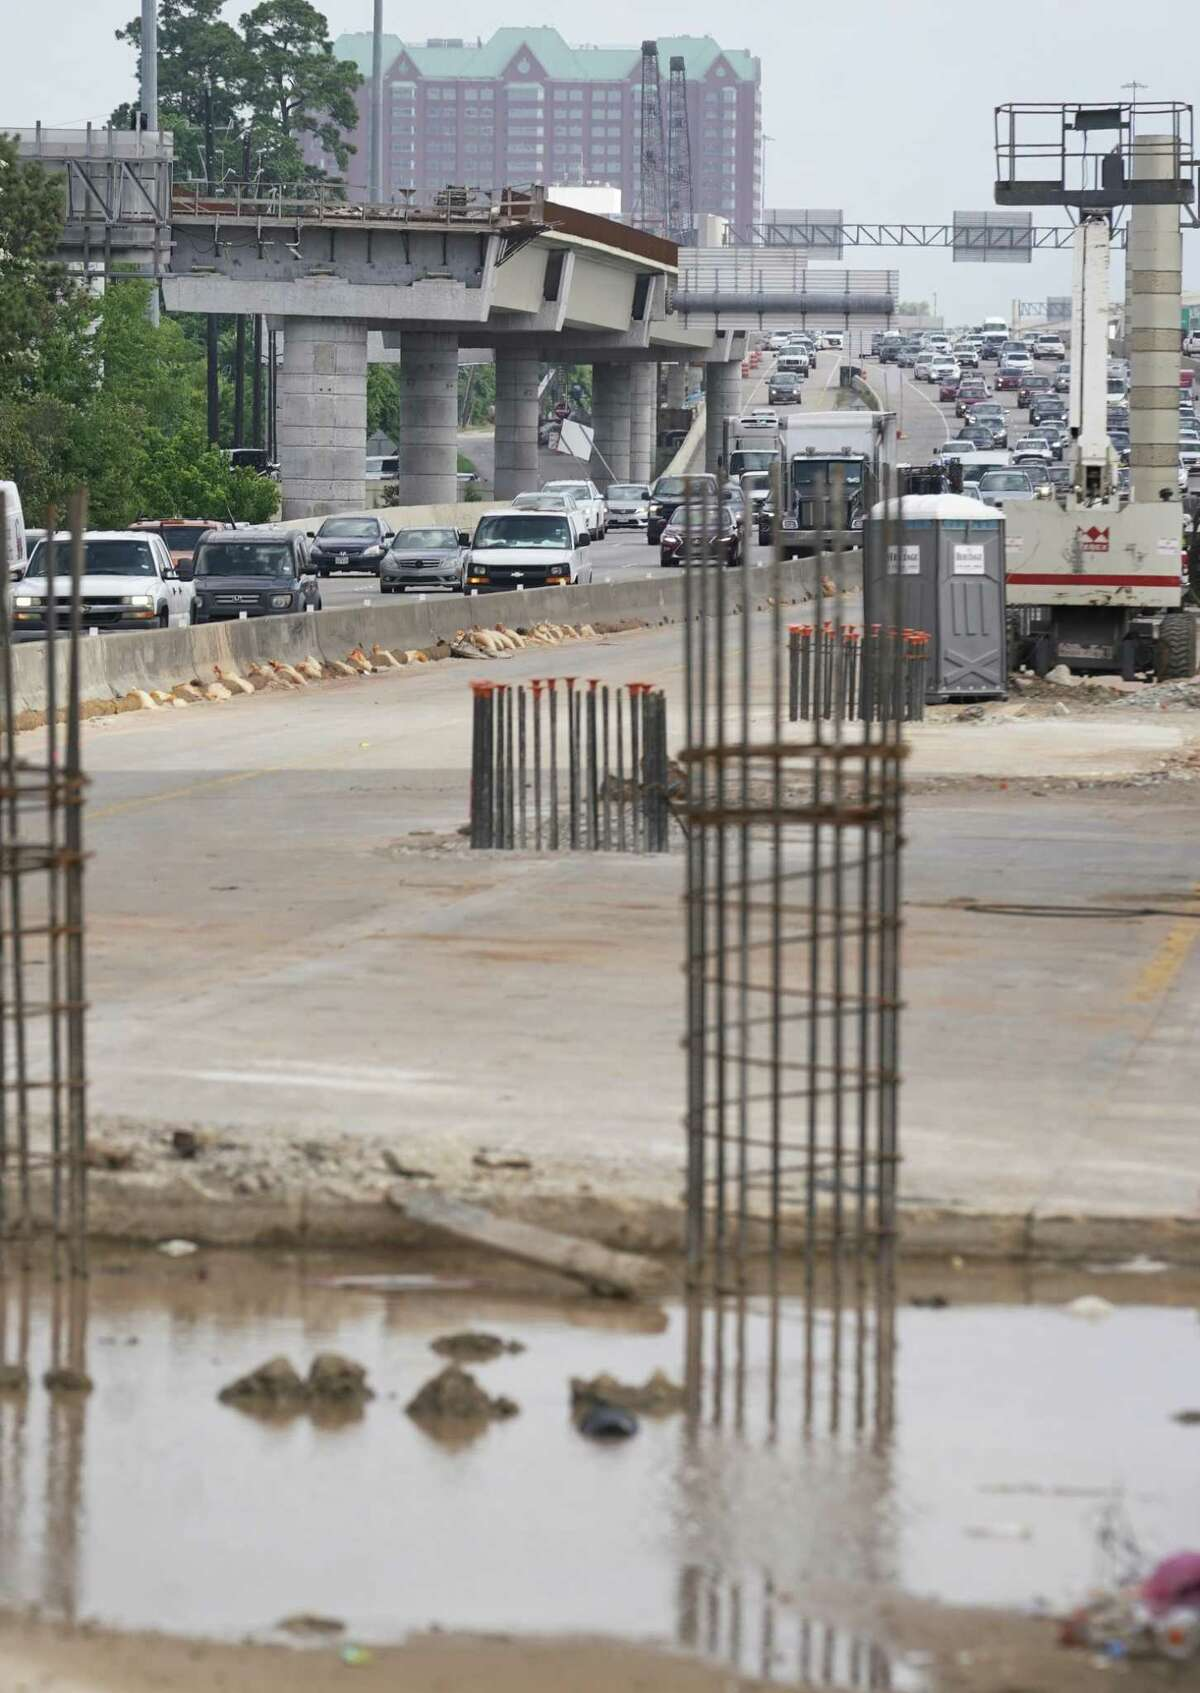 Crews will extend the Loop 610 busway overpass parallel to the freeway, to two center lanes along the loop, shown May 23. The project will eventually link Metro's Northwest Transit Center to Post Oak, where dedicated bus lanes are being built.